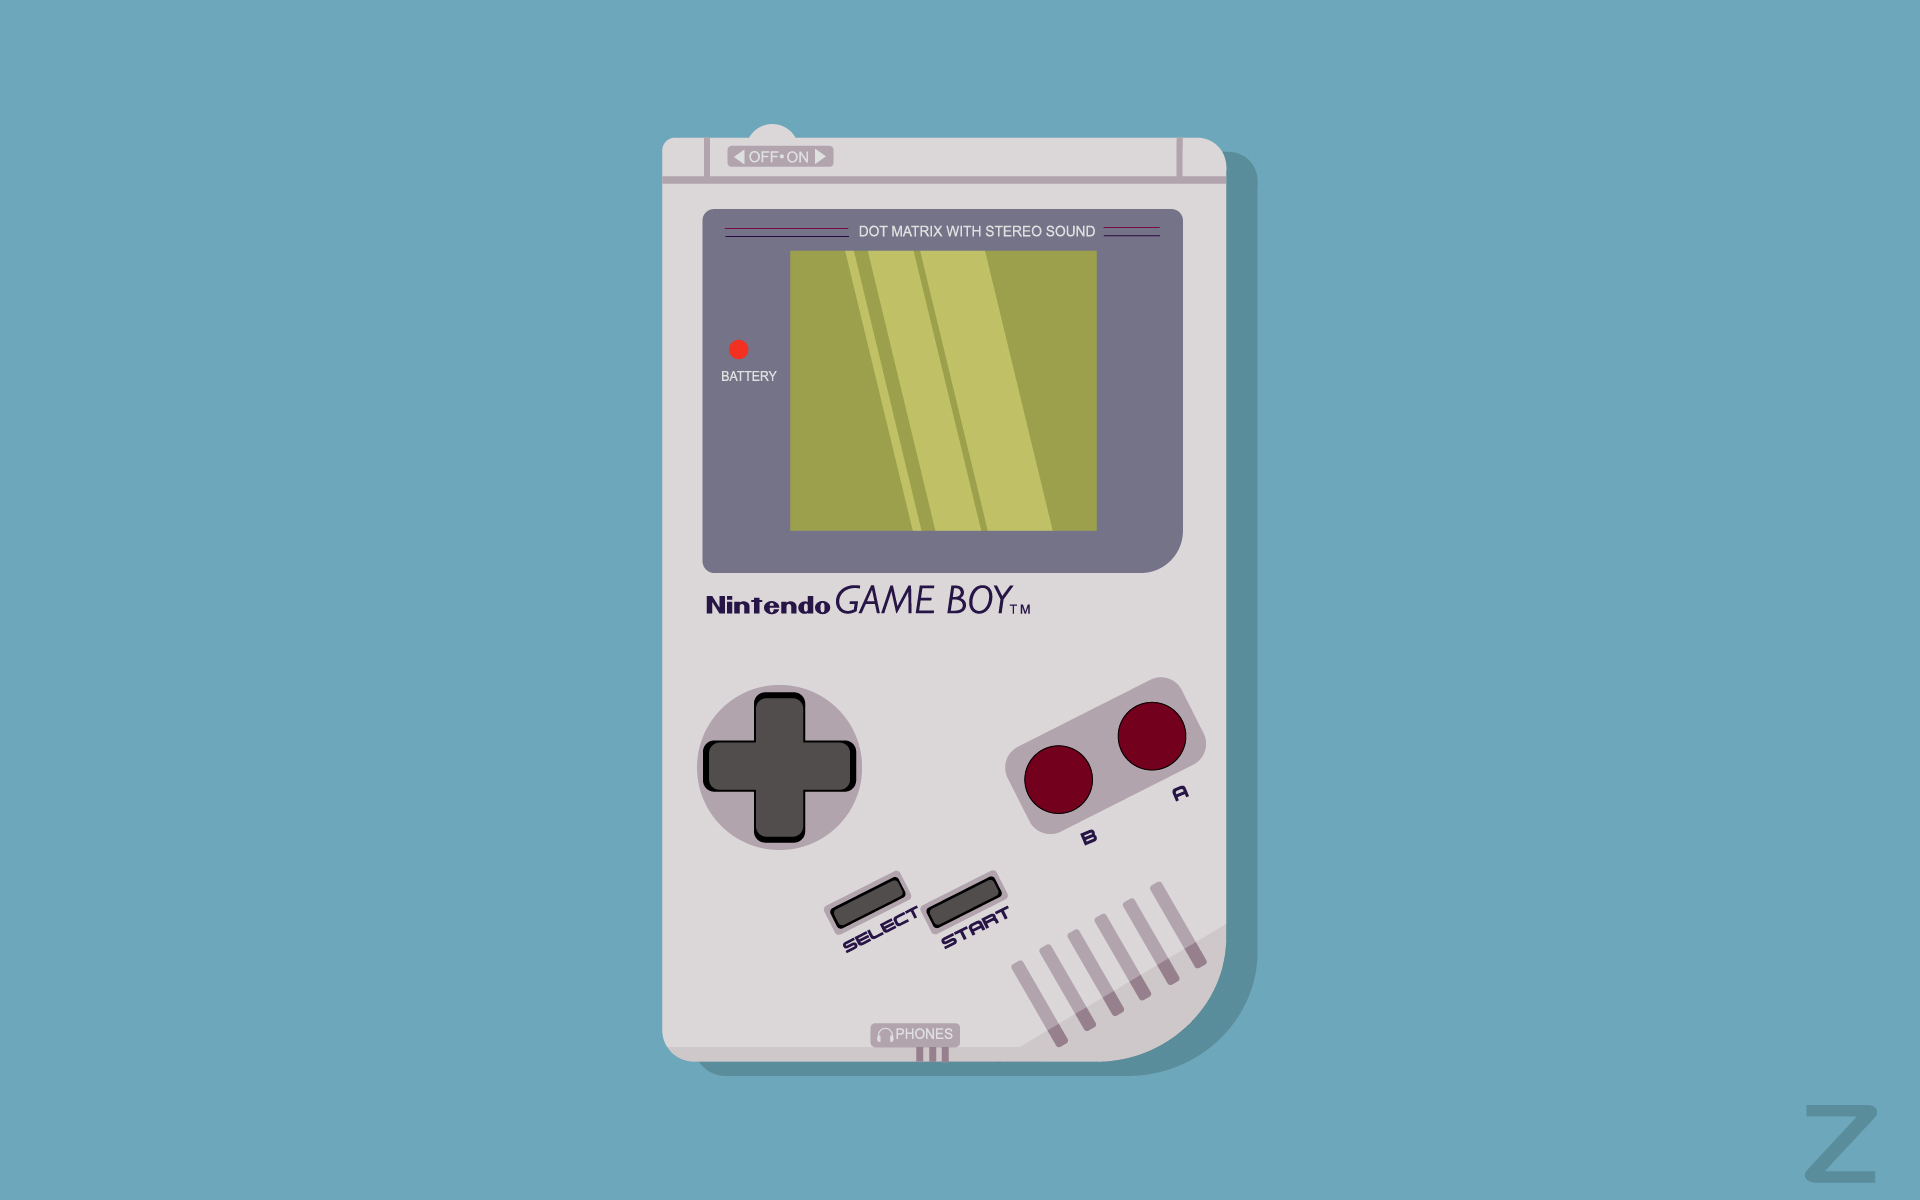 General 1920x1200 GameBoy simple background minimalism Nintendo video games vector Adobe Illustrator